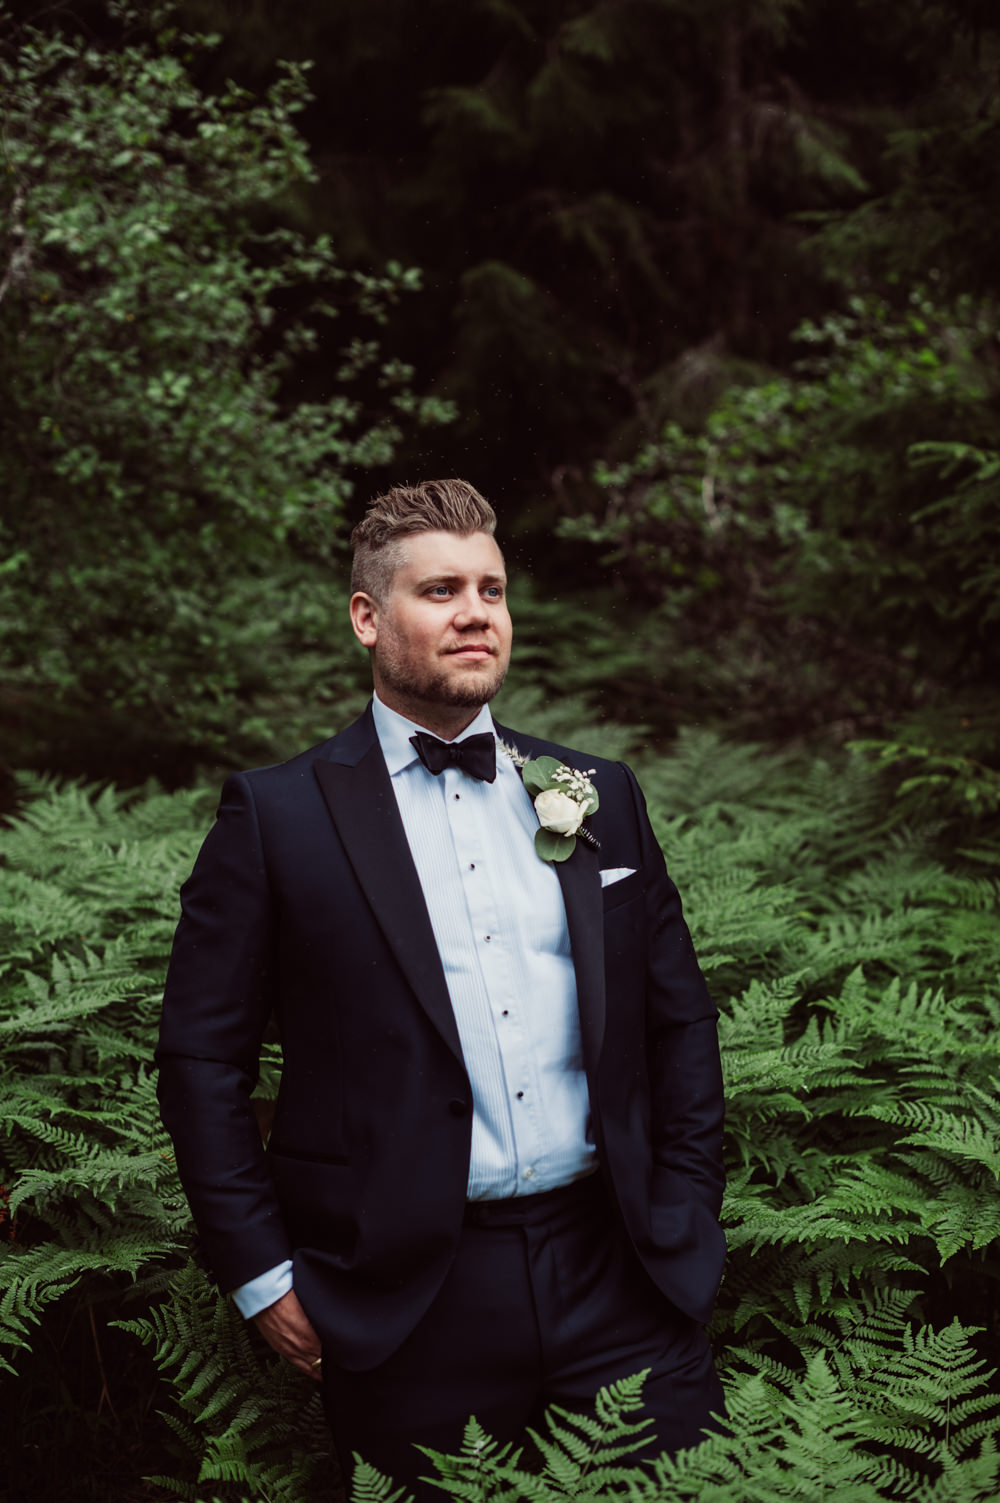 Groom Suit Tux Bow Tie Norway Wedding Maximilian Photography